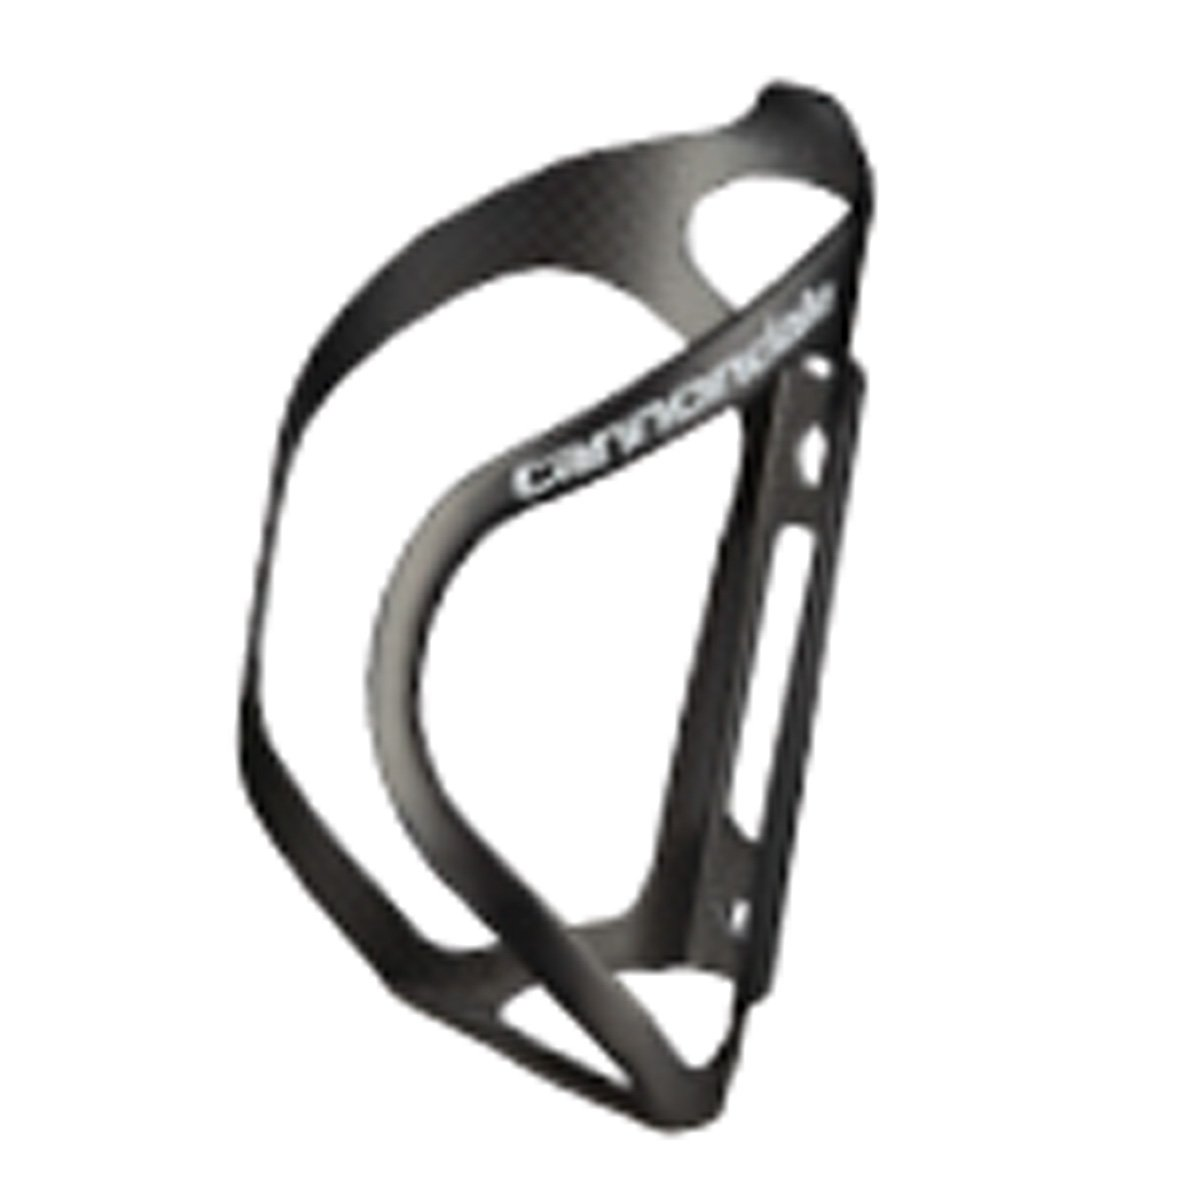 Cannondale GT-40 Carbon Bicycle Water Bottle Cage - CP5107U (Barbeque w/White) by Cannondale